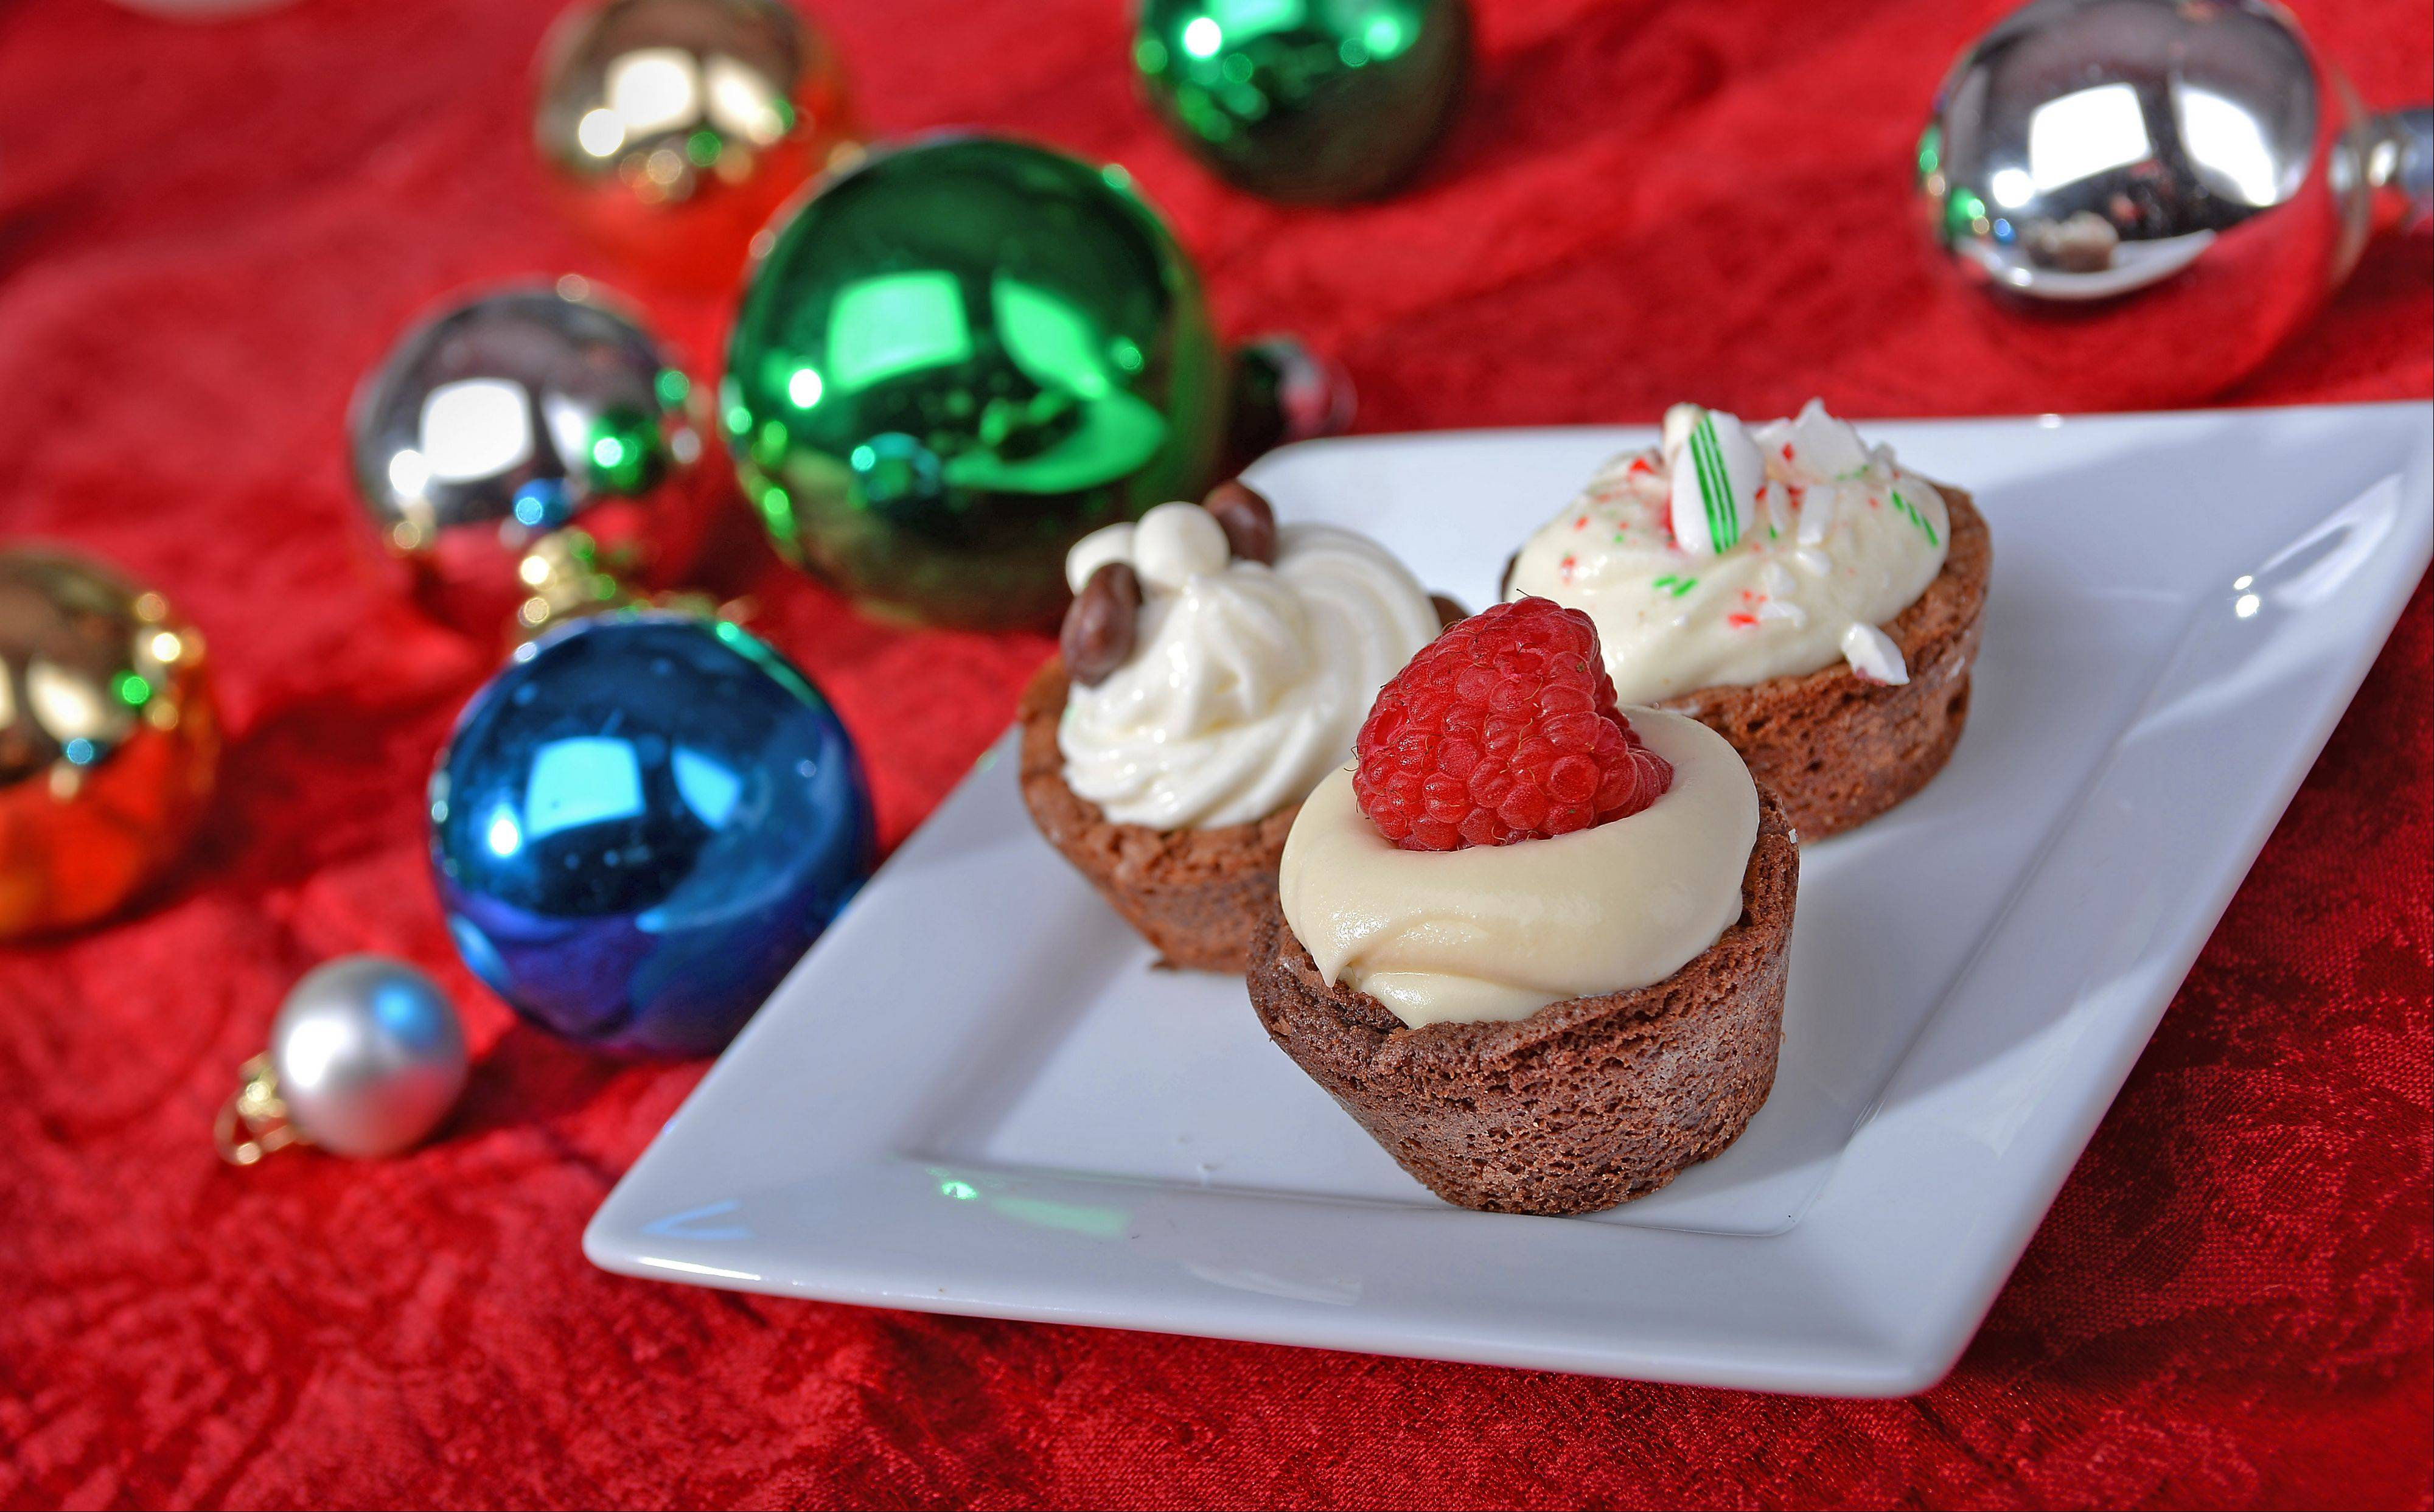 Brownie bites topped with mousse and garnished with raspberries and crushed candy canes are a welcome addition to any holiday treat table.